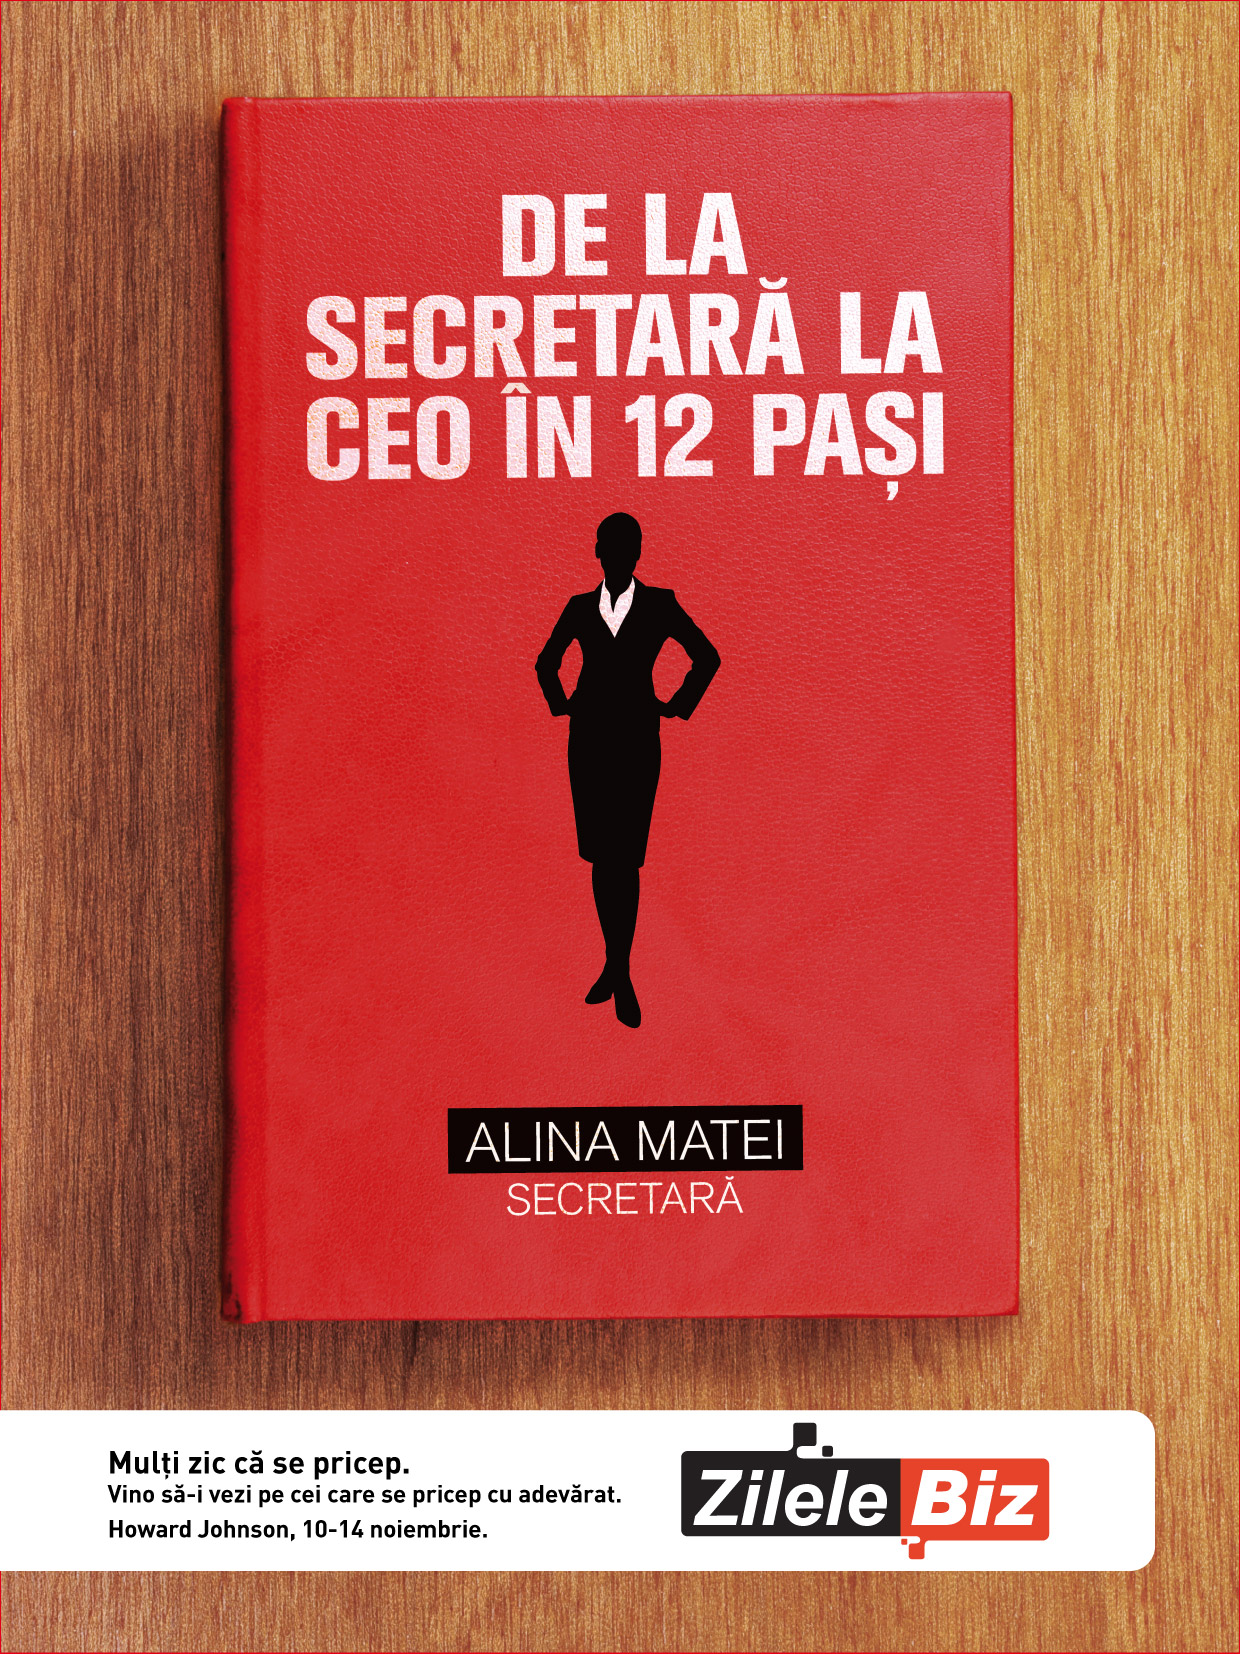 BIZ_210x280_Secretara_CEO-01